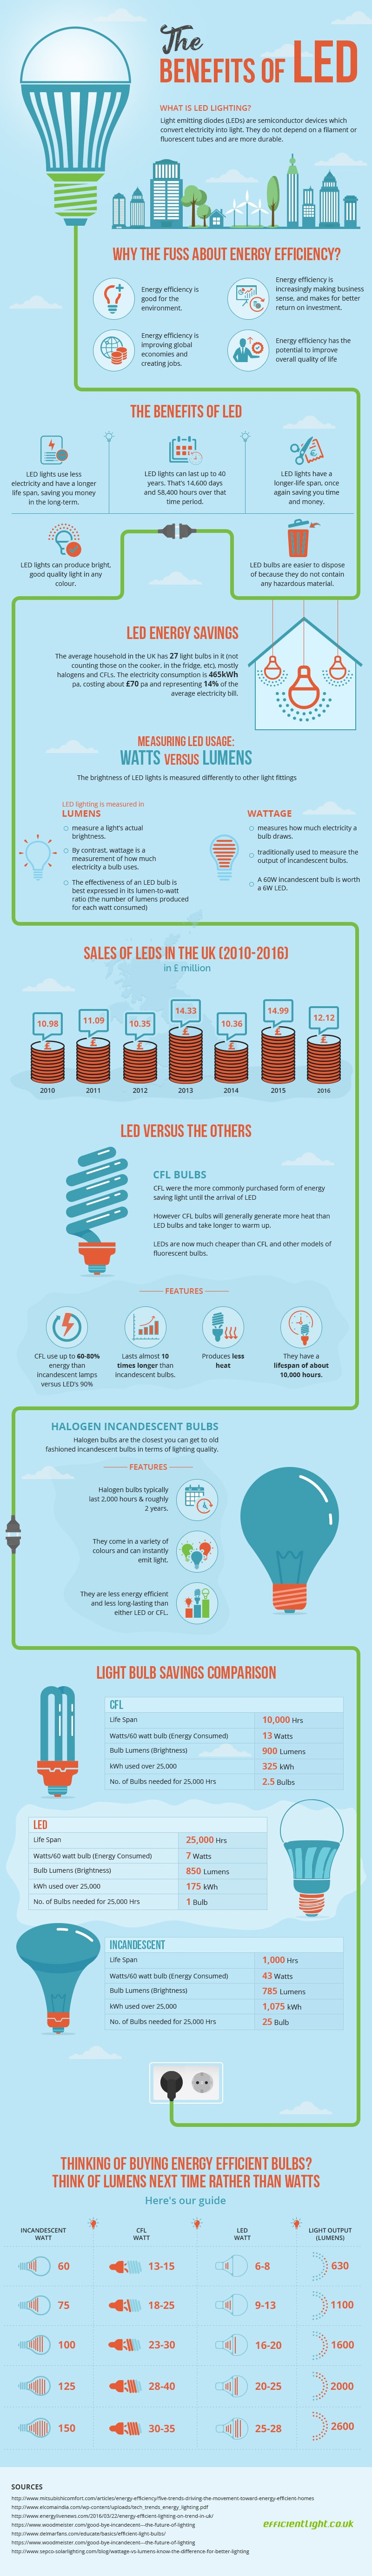 Trend-in-Lighting-and-Energy-Savings-Infographic.jpg